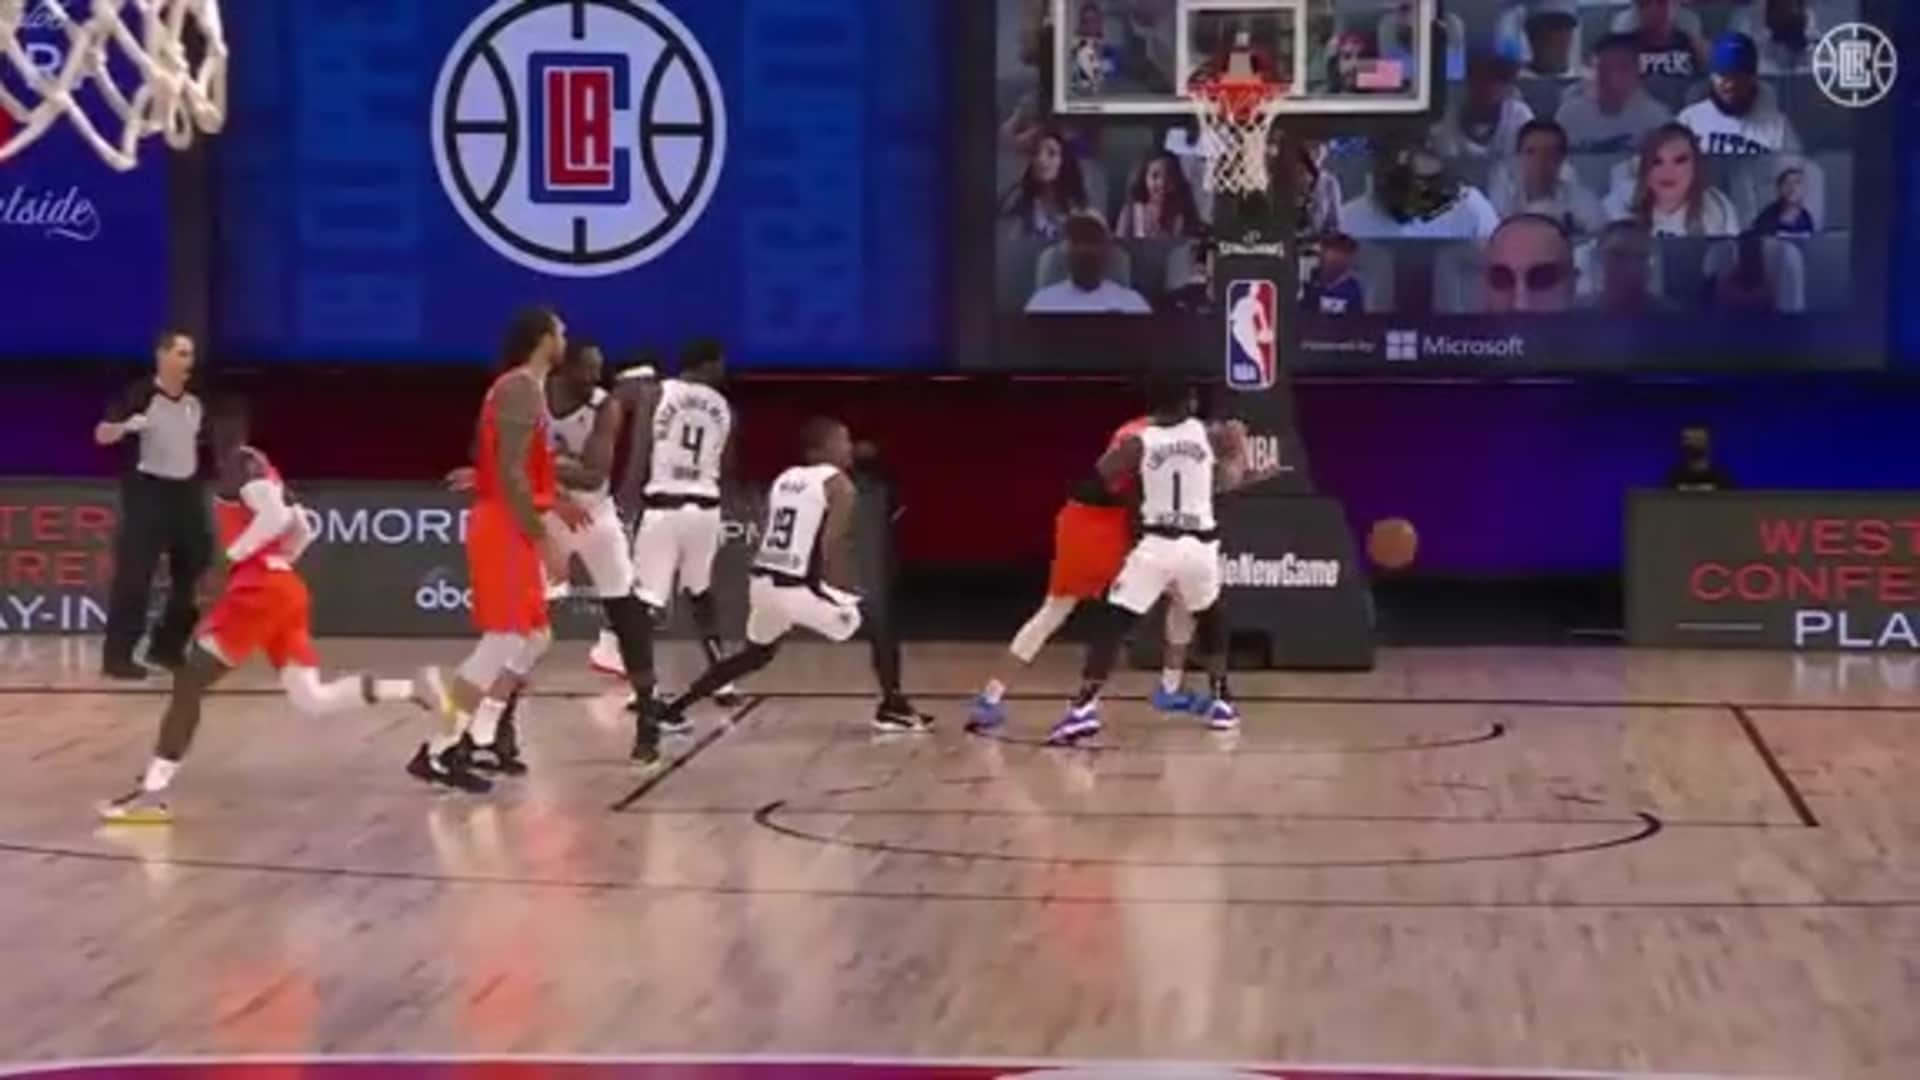 Coffey Swipes the Inbound Pass and Breaks Away for a Jam | (08.14.20)